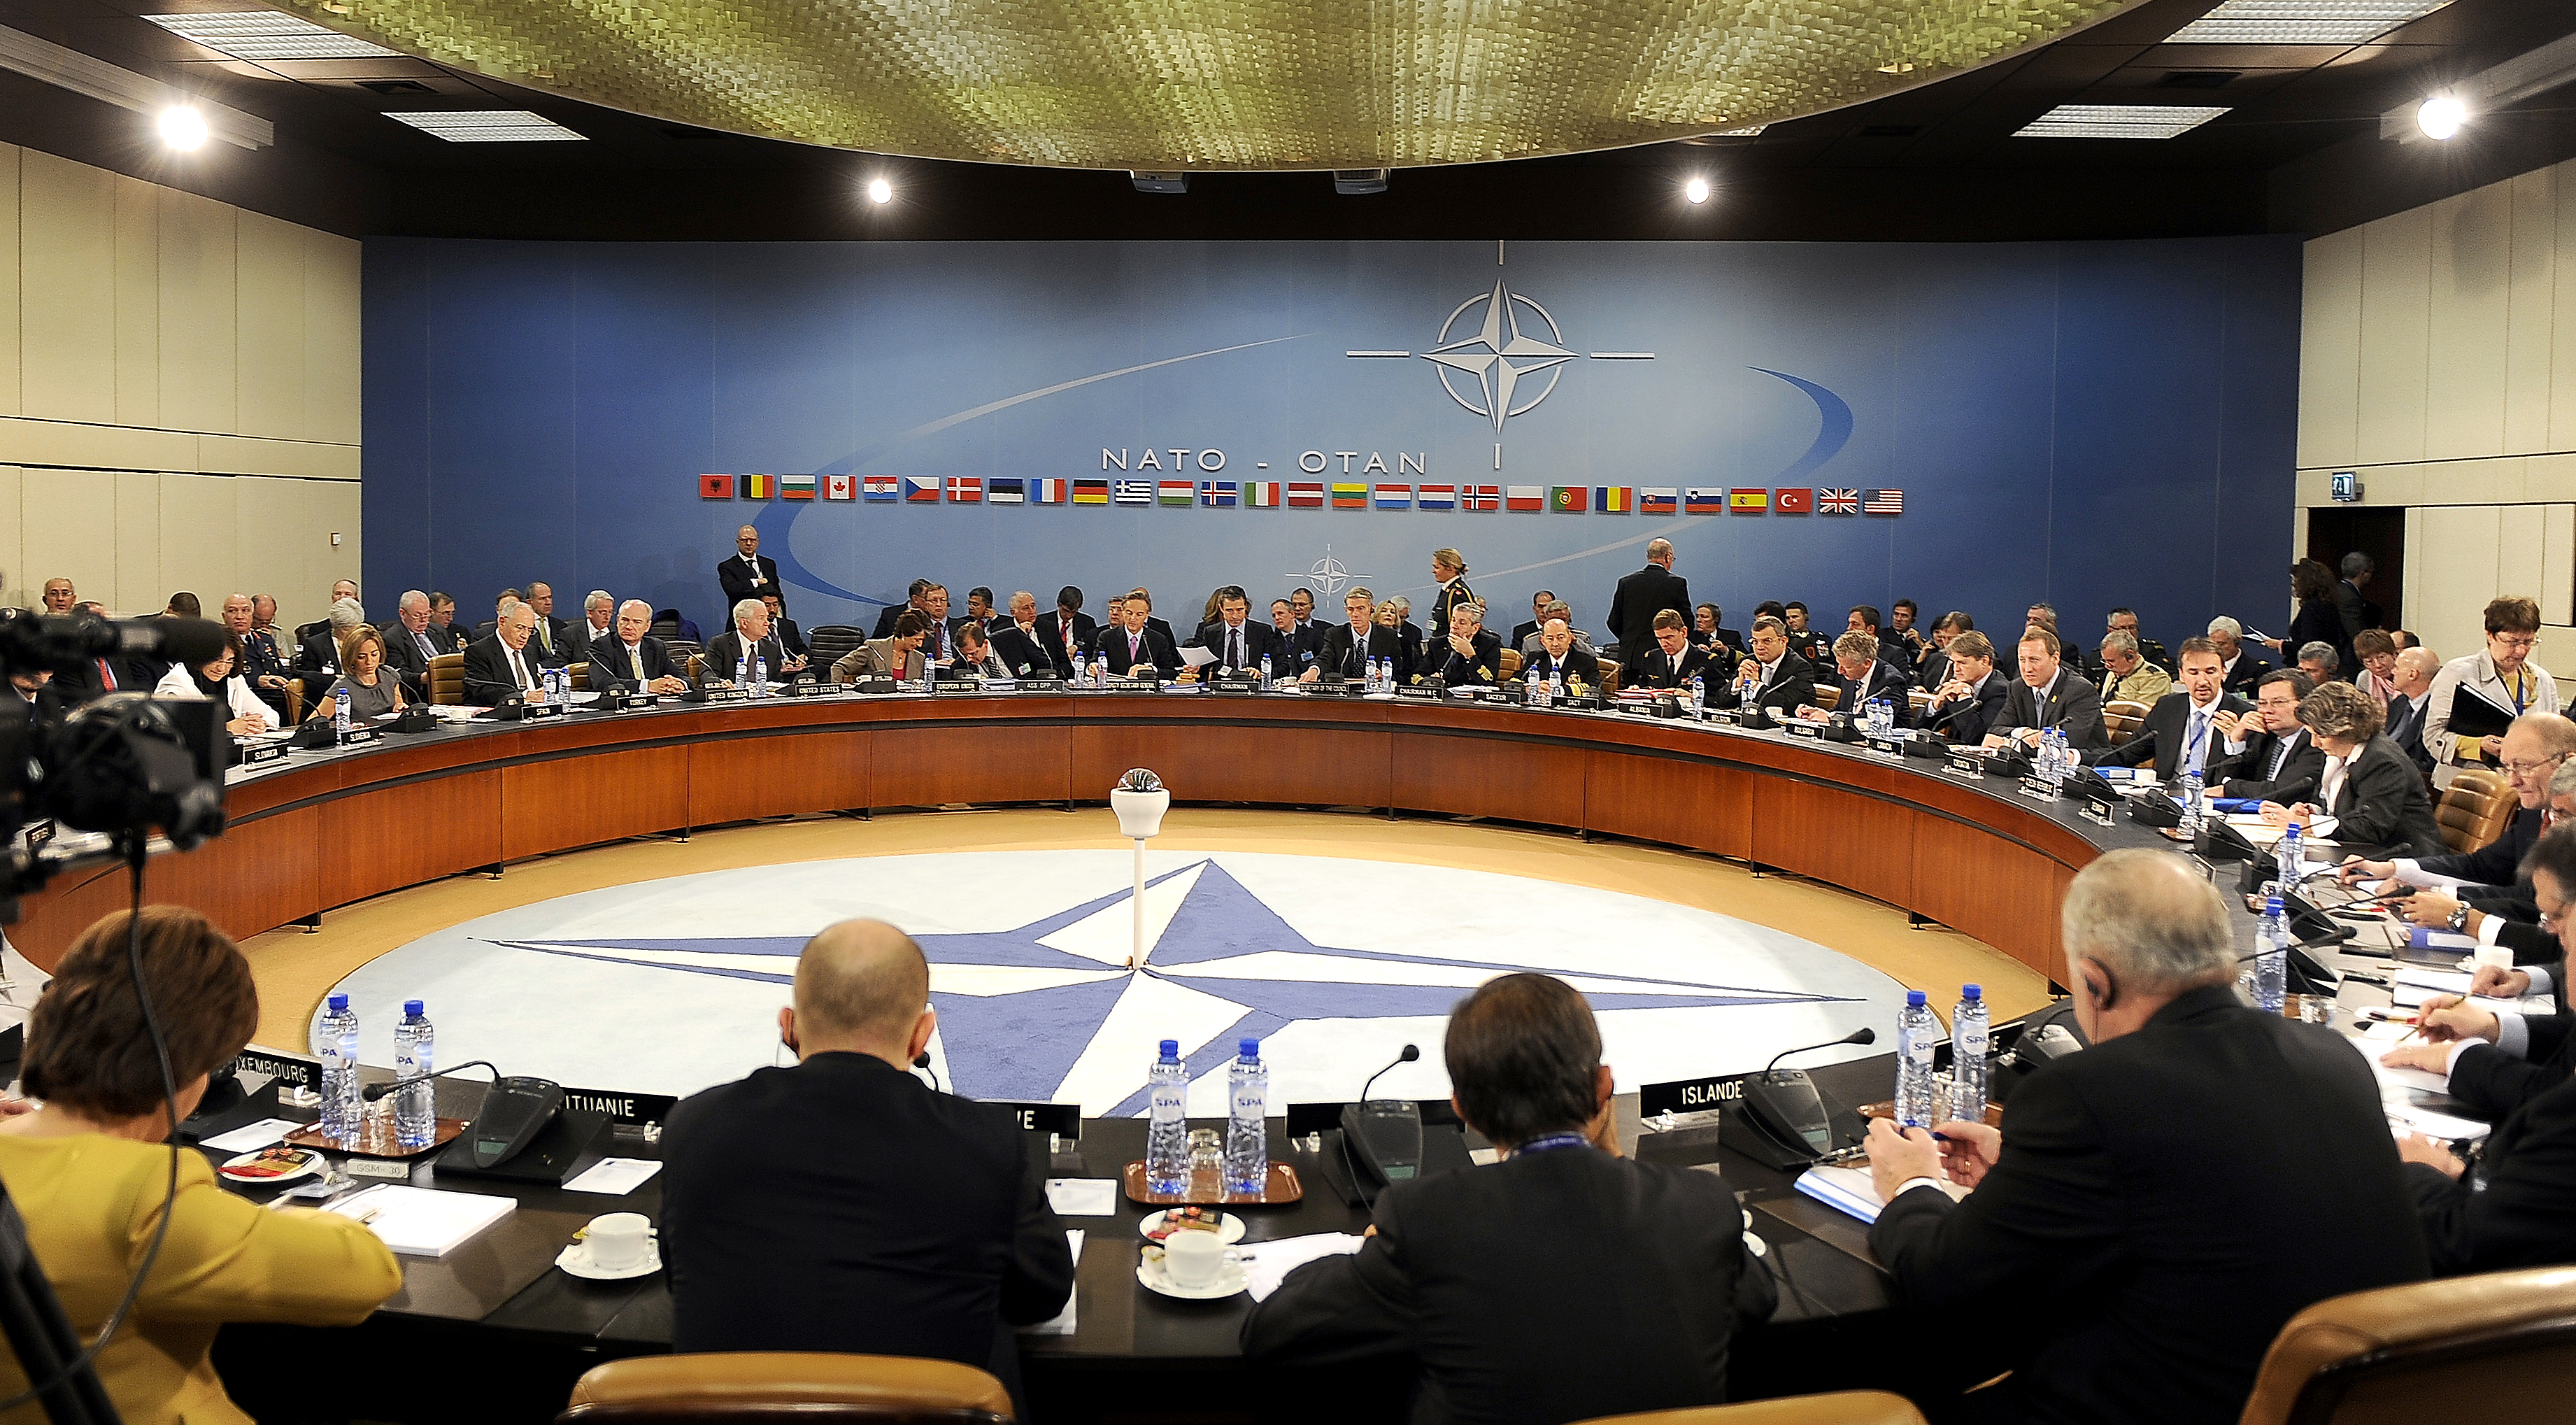 http://upload.wikimedia.org/wikipedia/commons/d/d6/NATO_Ministers_of_Defense_and_of_Foreign_Affairs_meet_at_NATO_headquarters_in_Brussels_2010.jpg